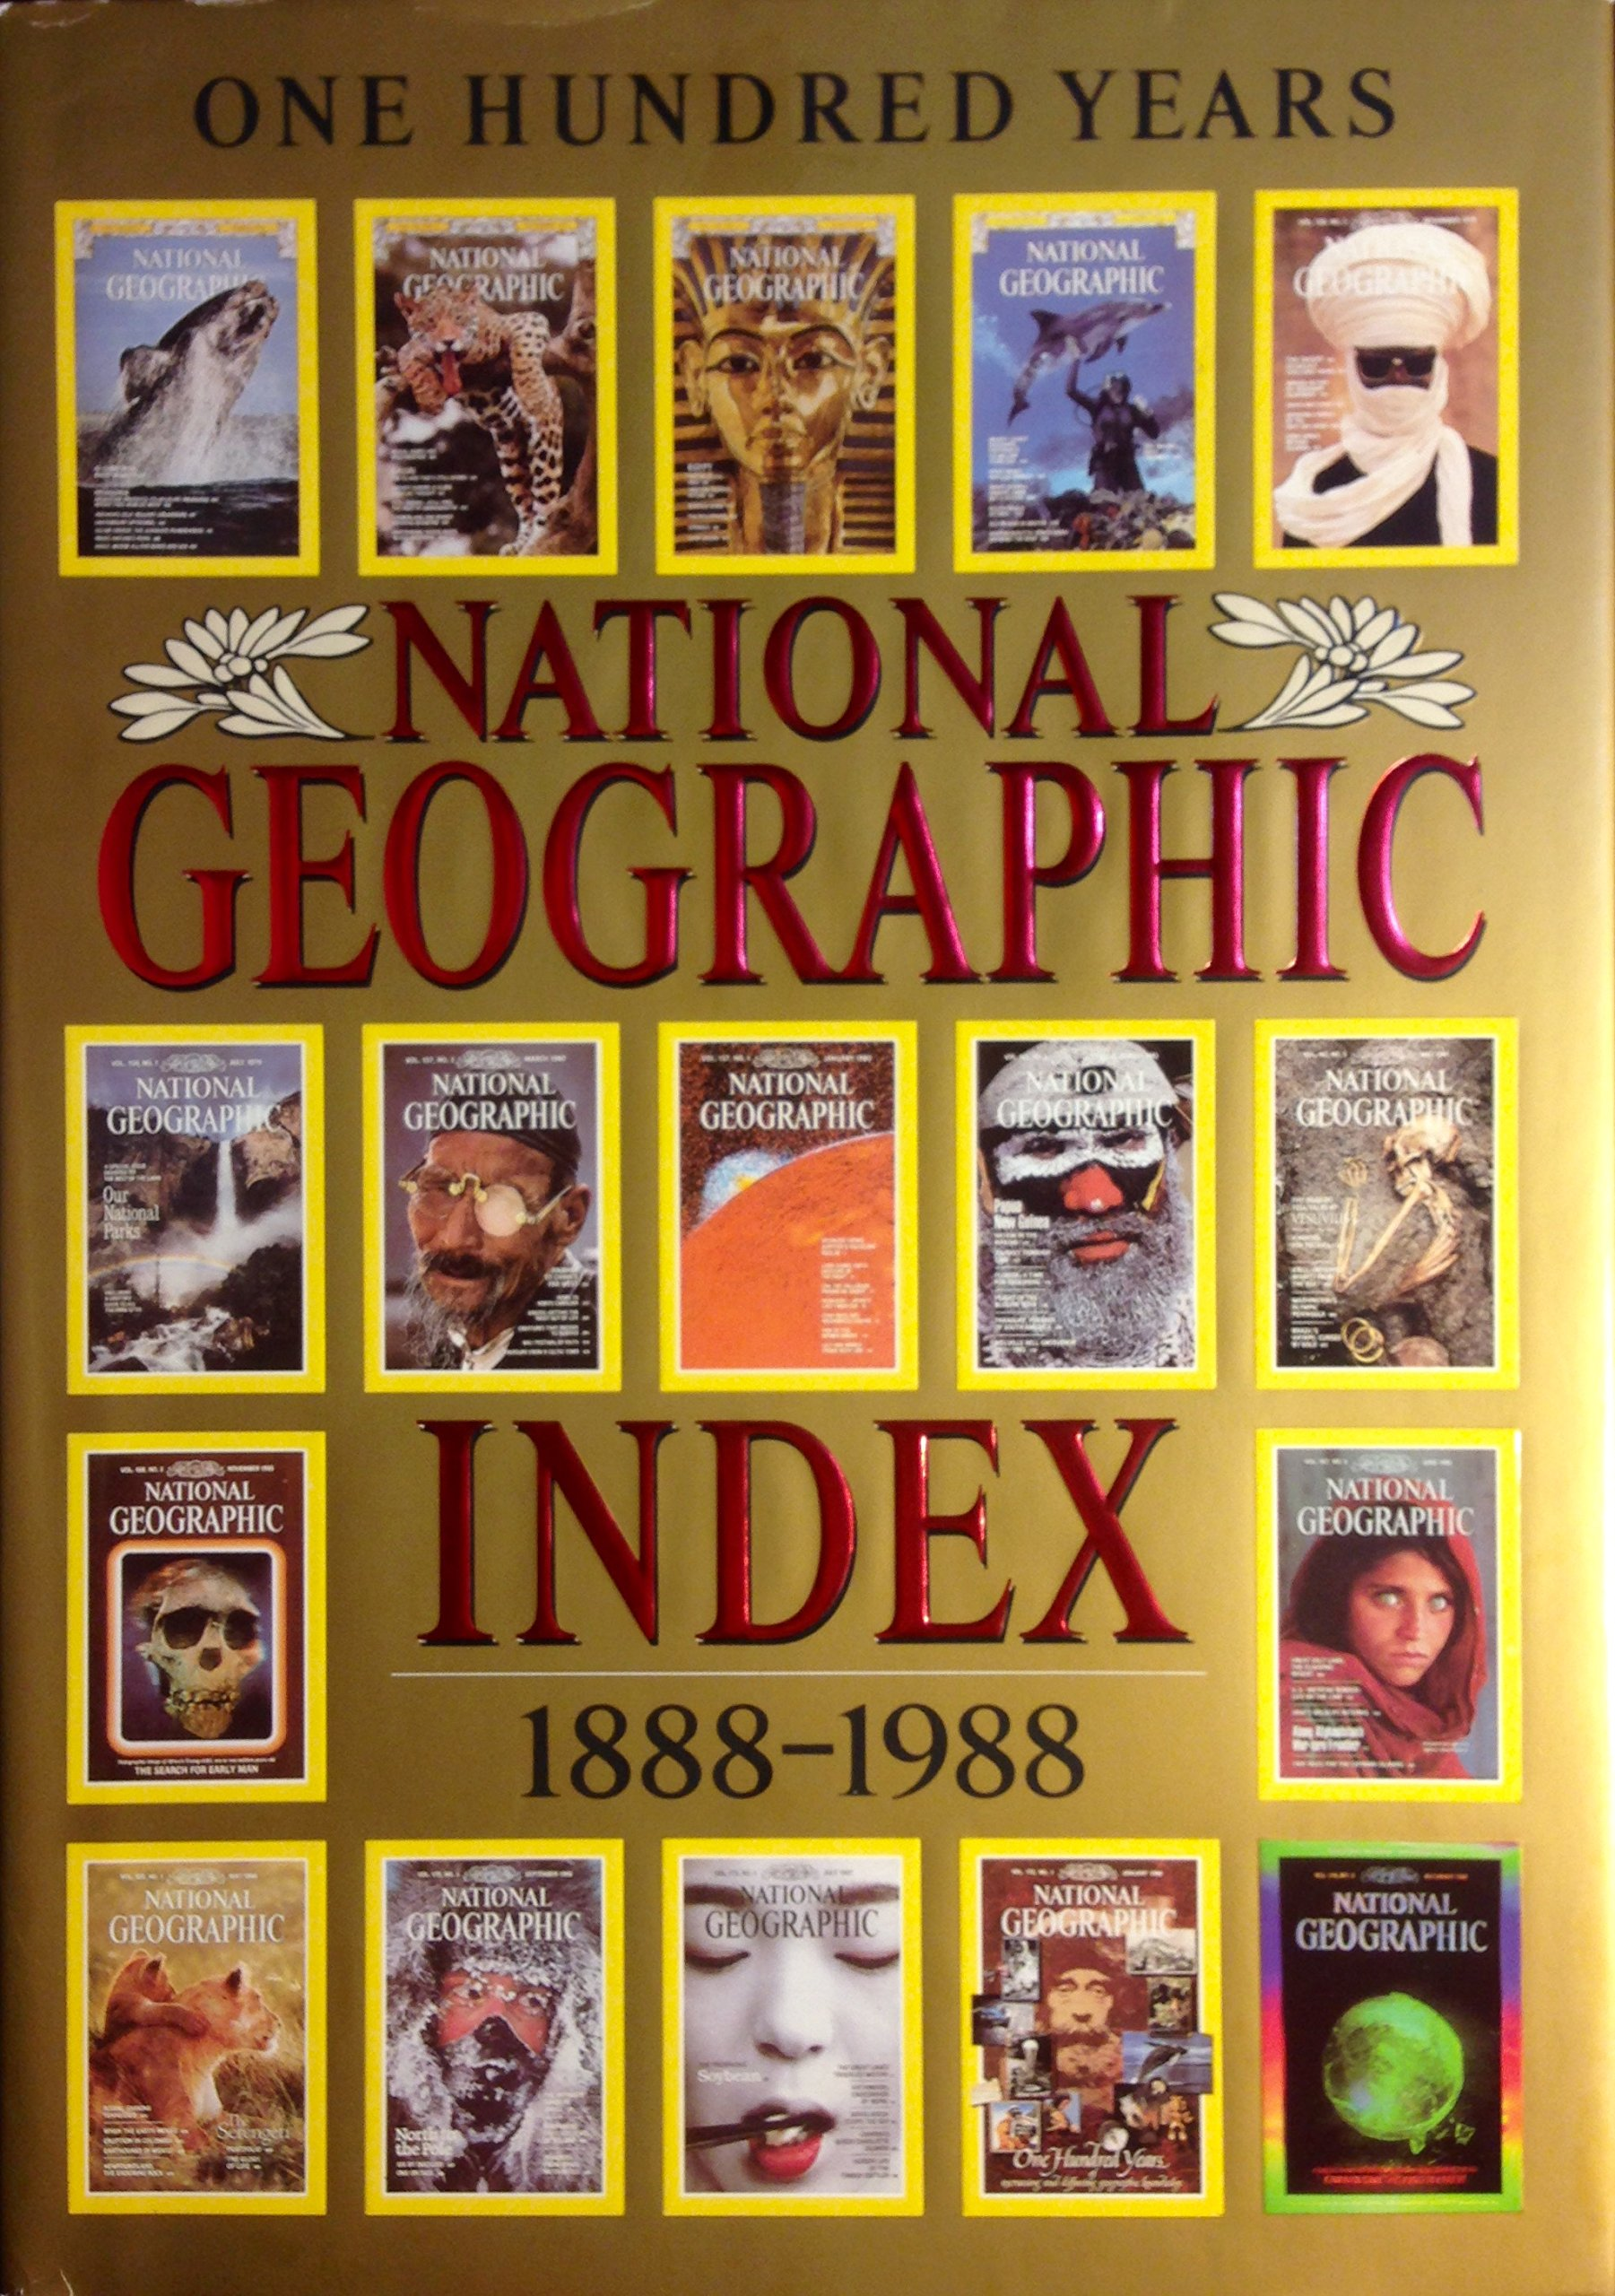 NATIONAL GEOGRAPHIC INDEX: One Hundred Years, 1888-1988